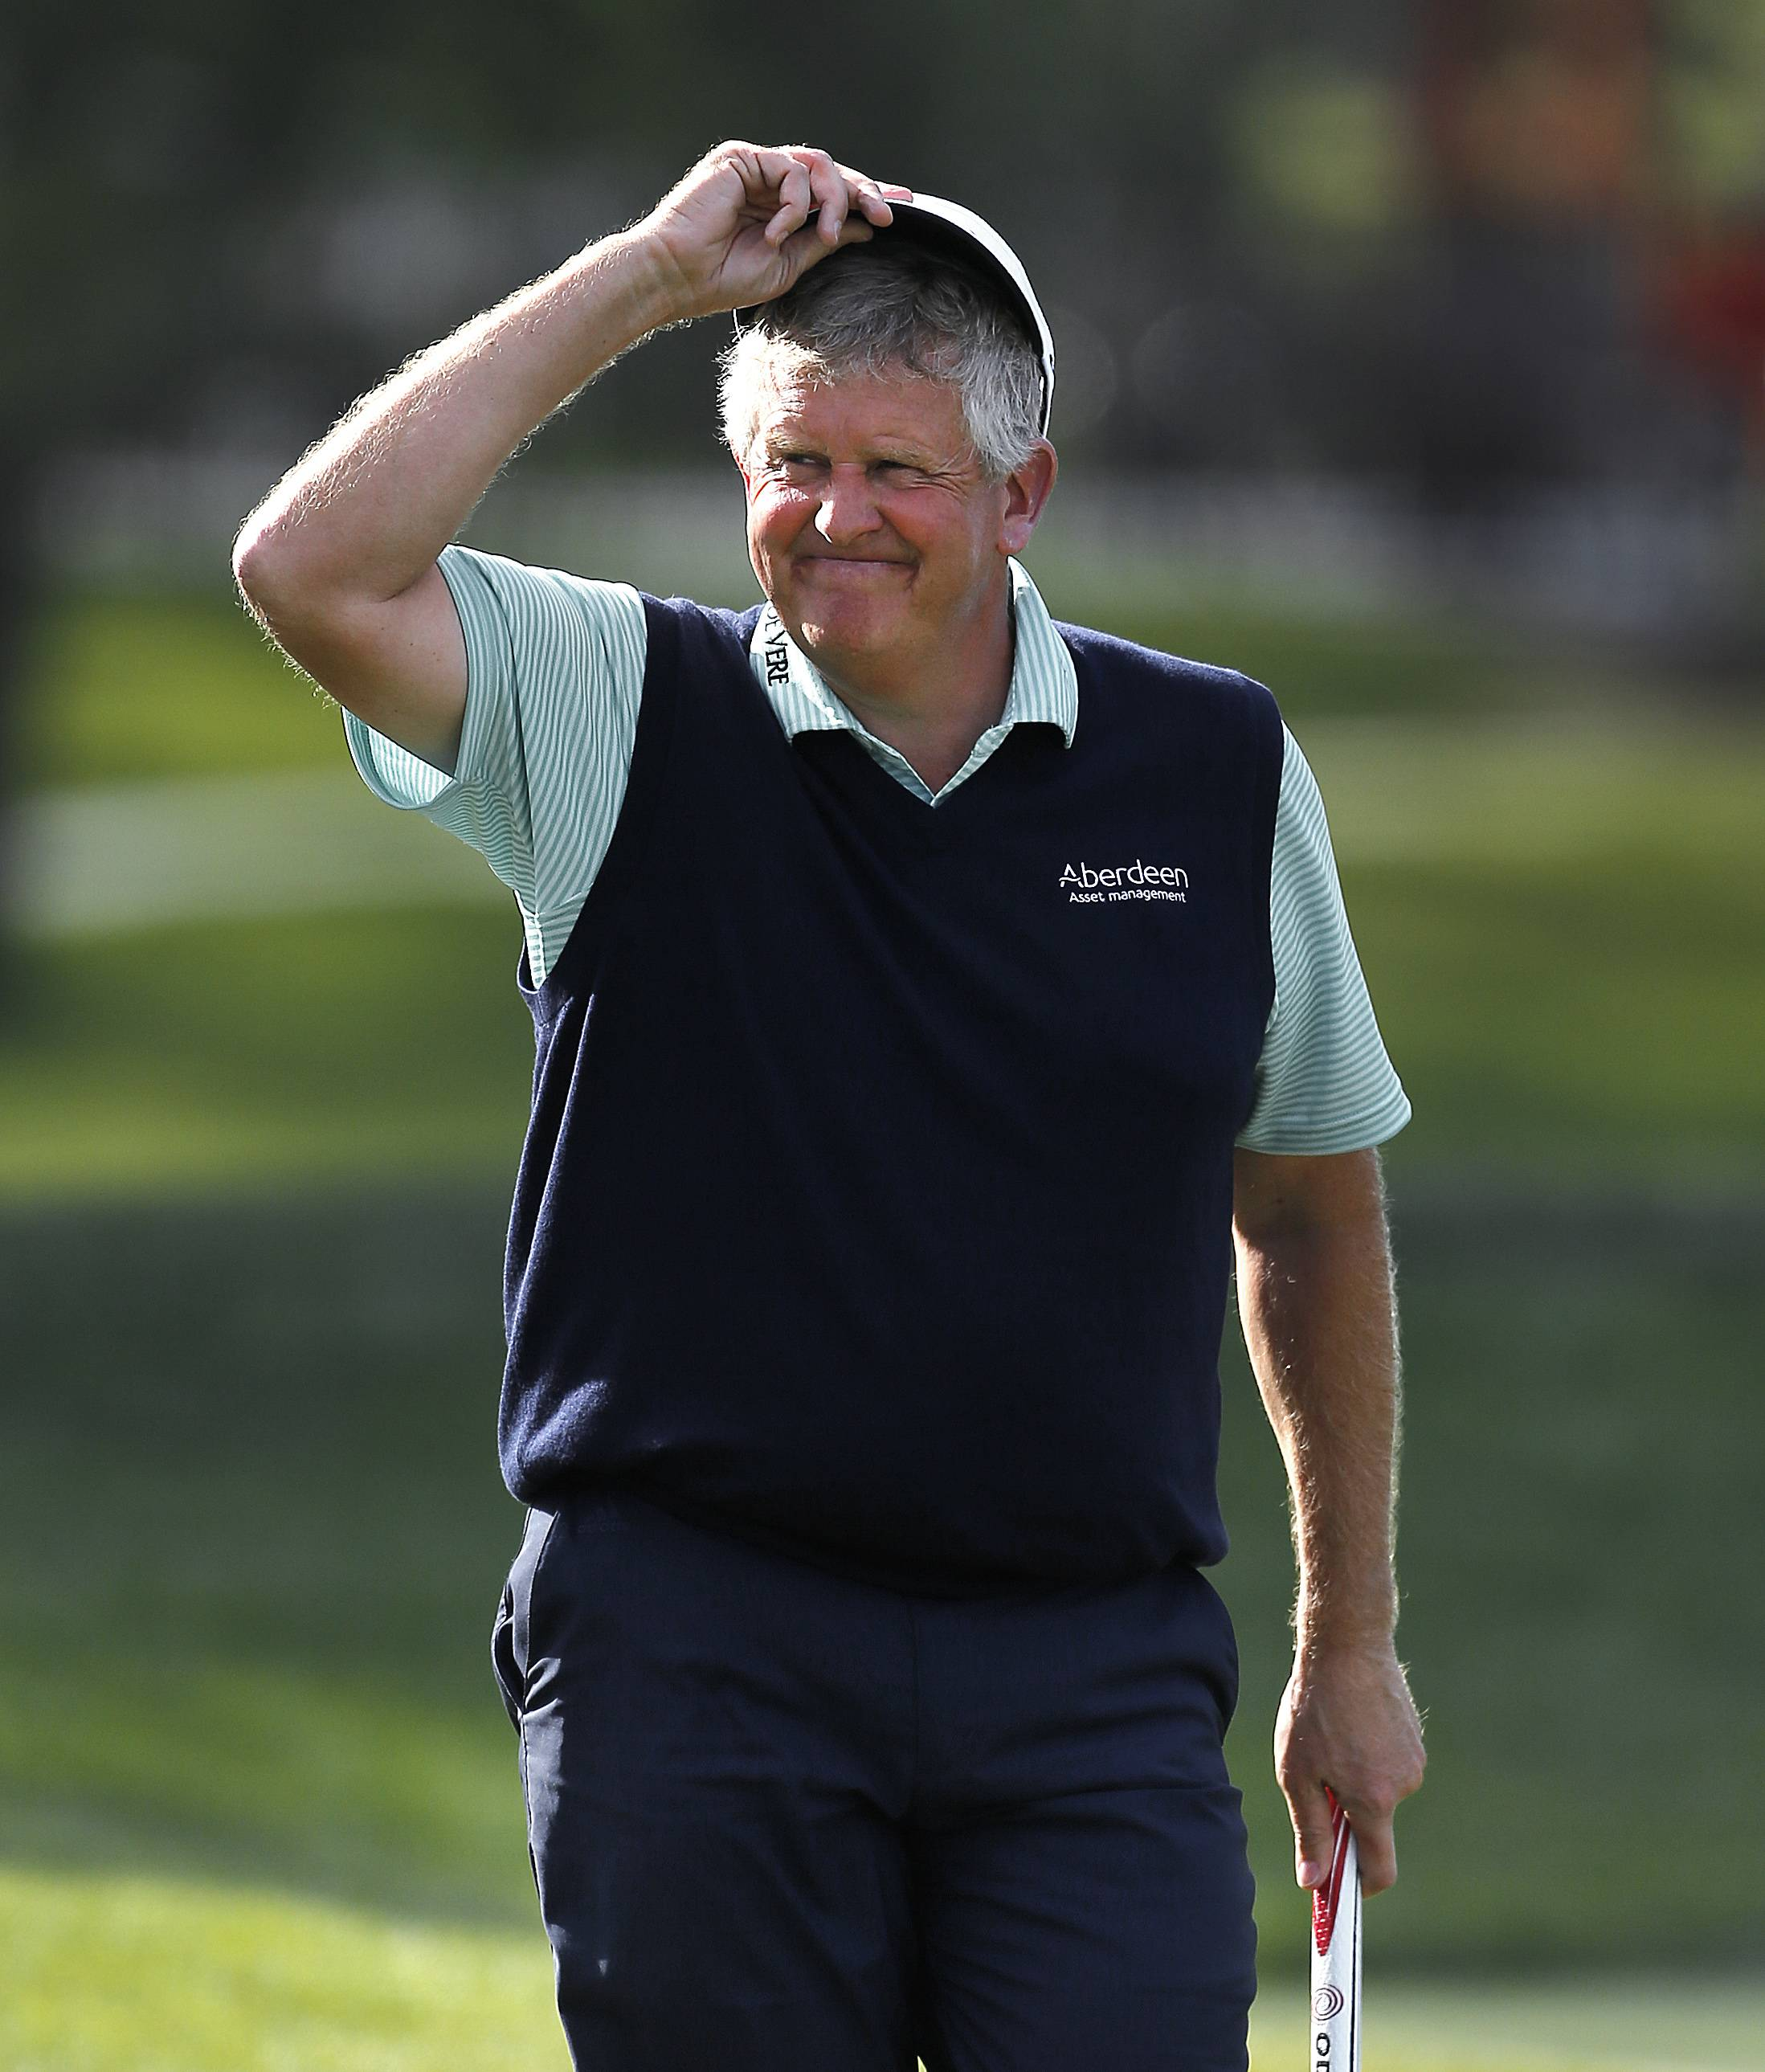 Montgomerie finds comfort zone on Champions Tour